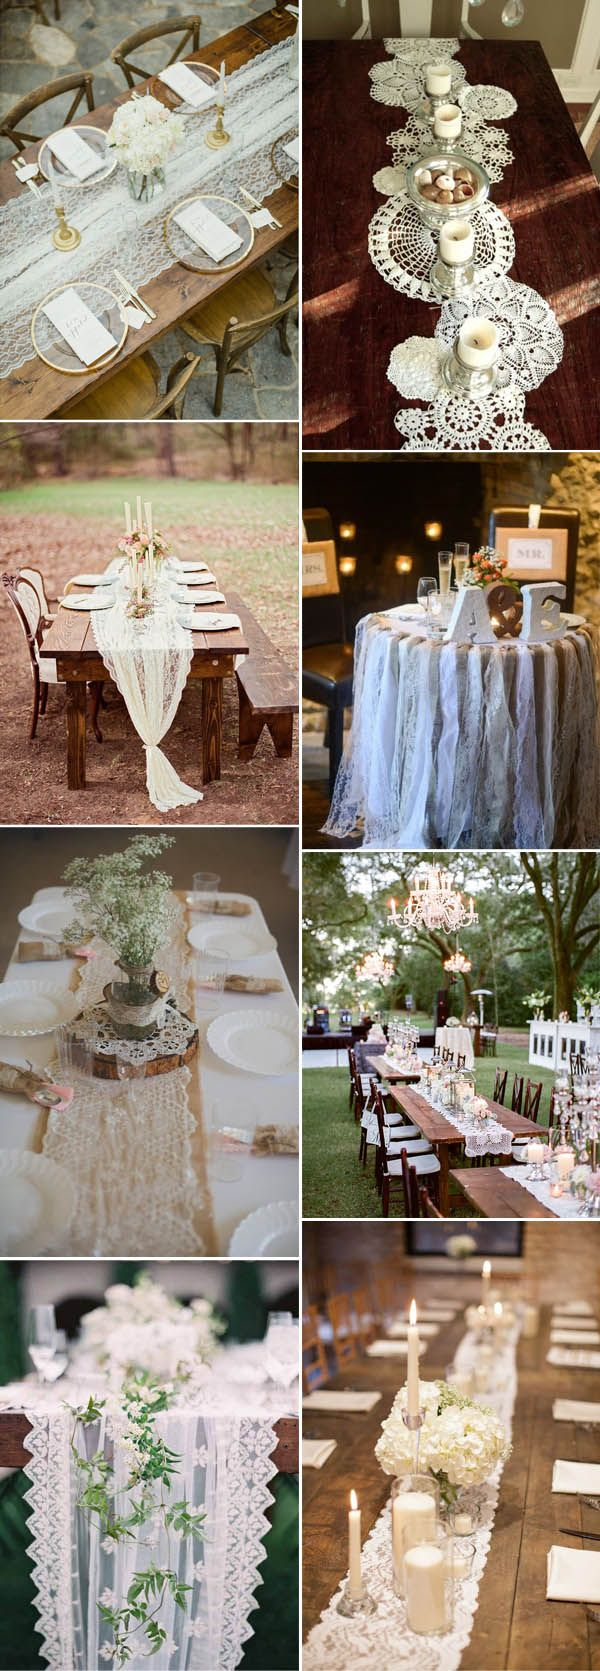 lace rustic and vintage wedding table settings